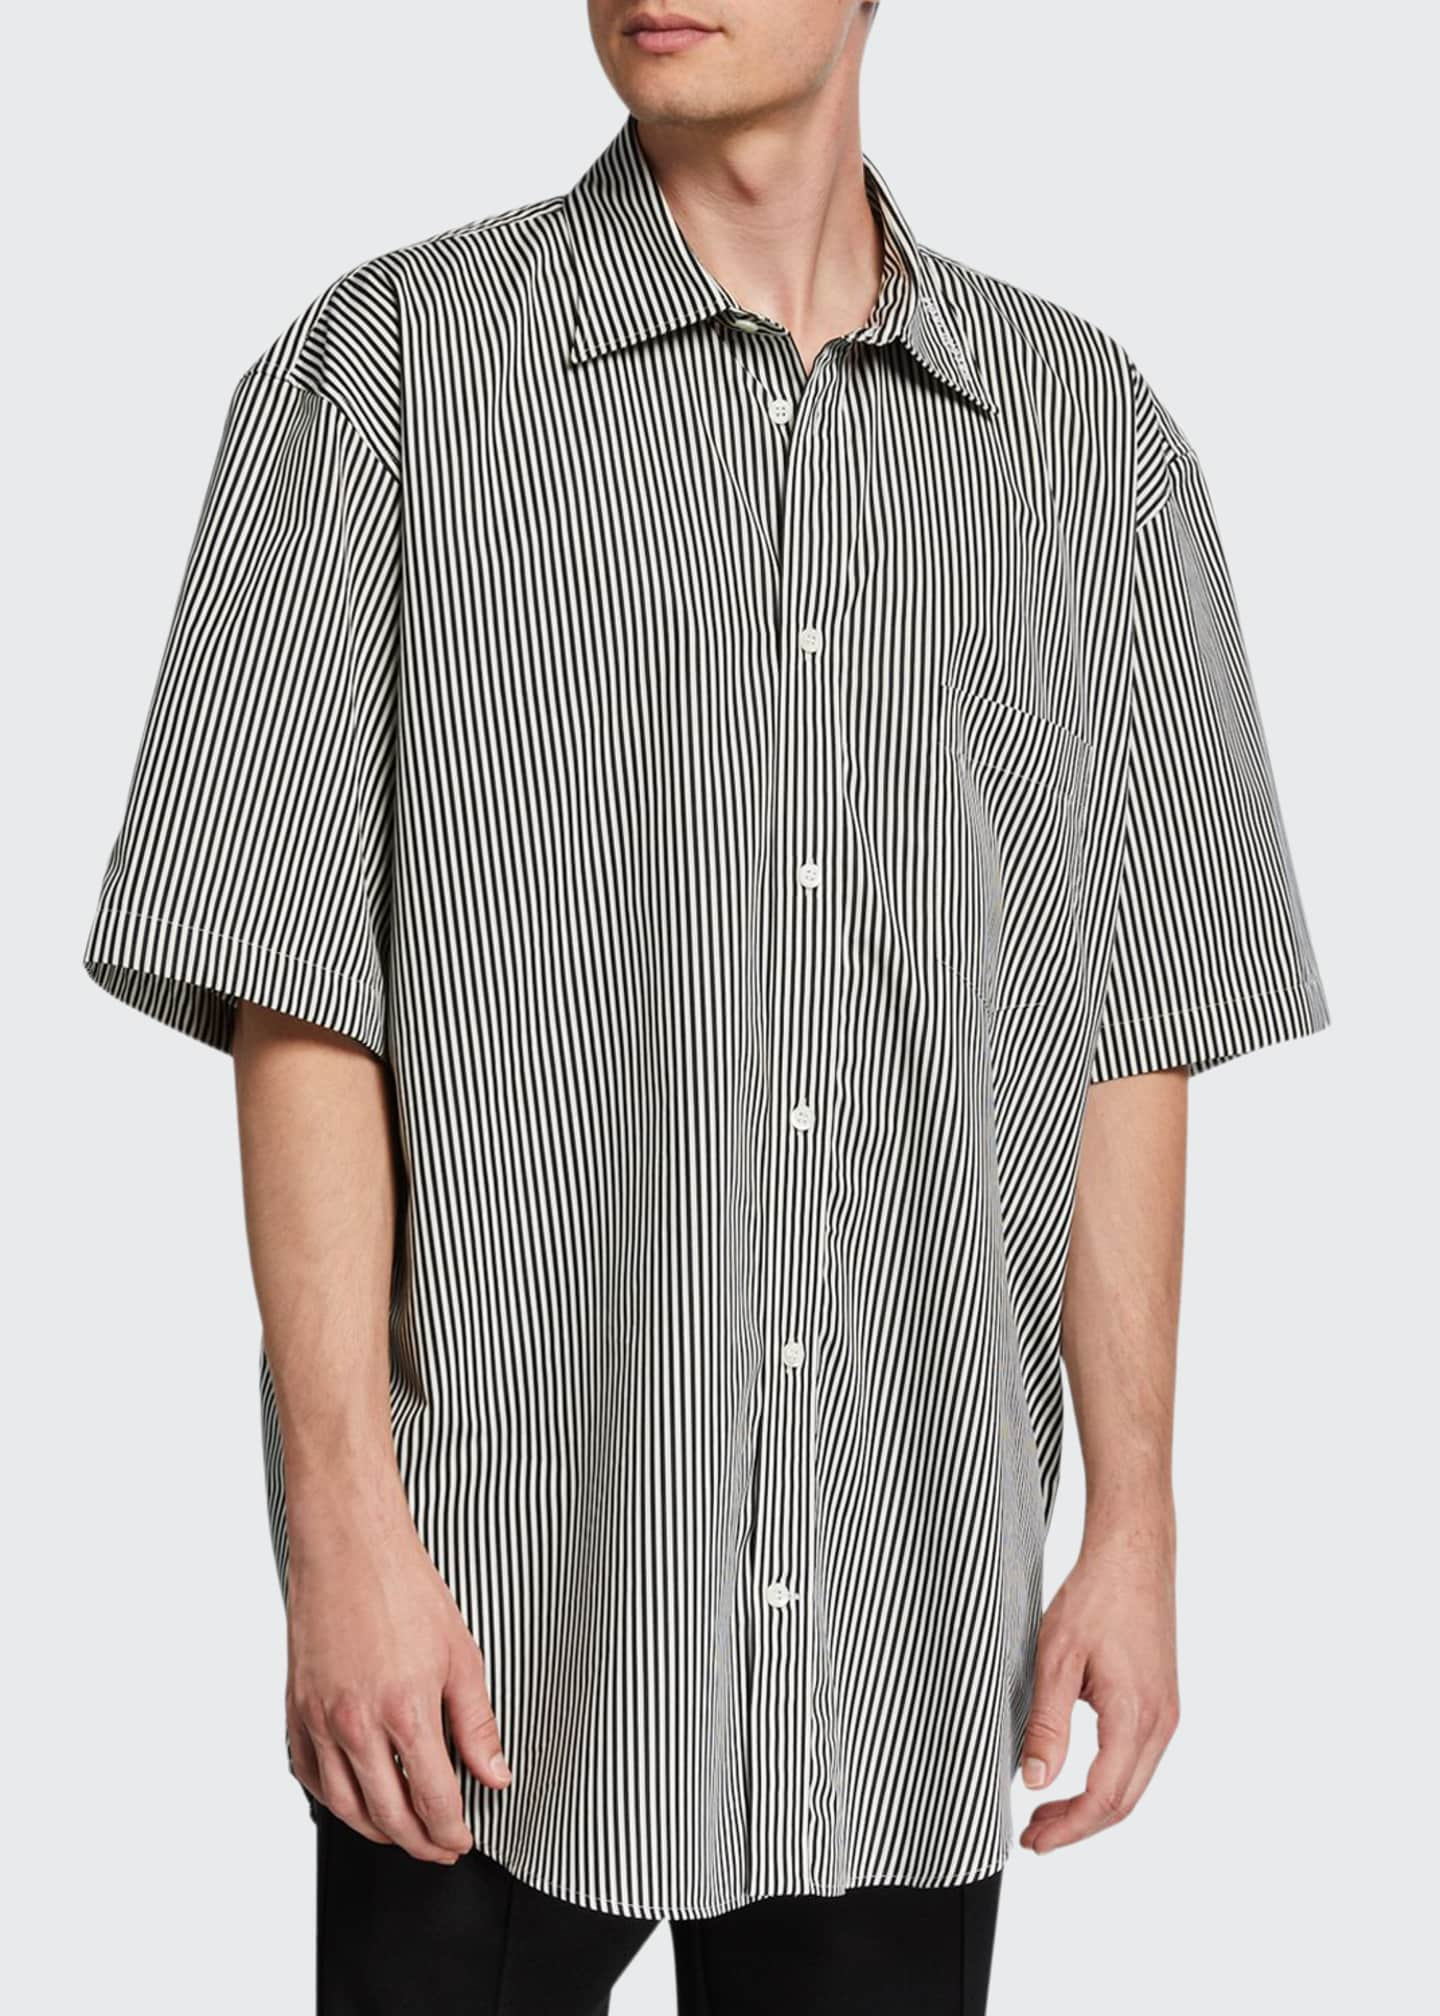 Balenciaga Men's Oversized Bengal Stripe Sport Shirt